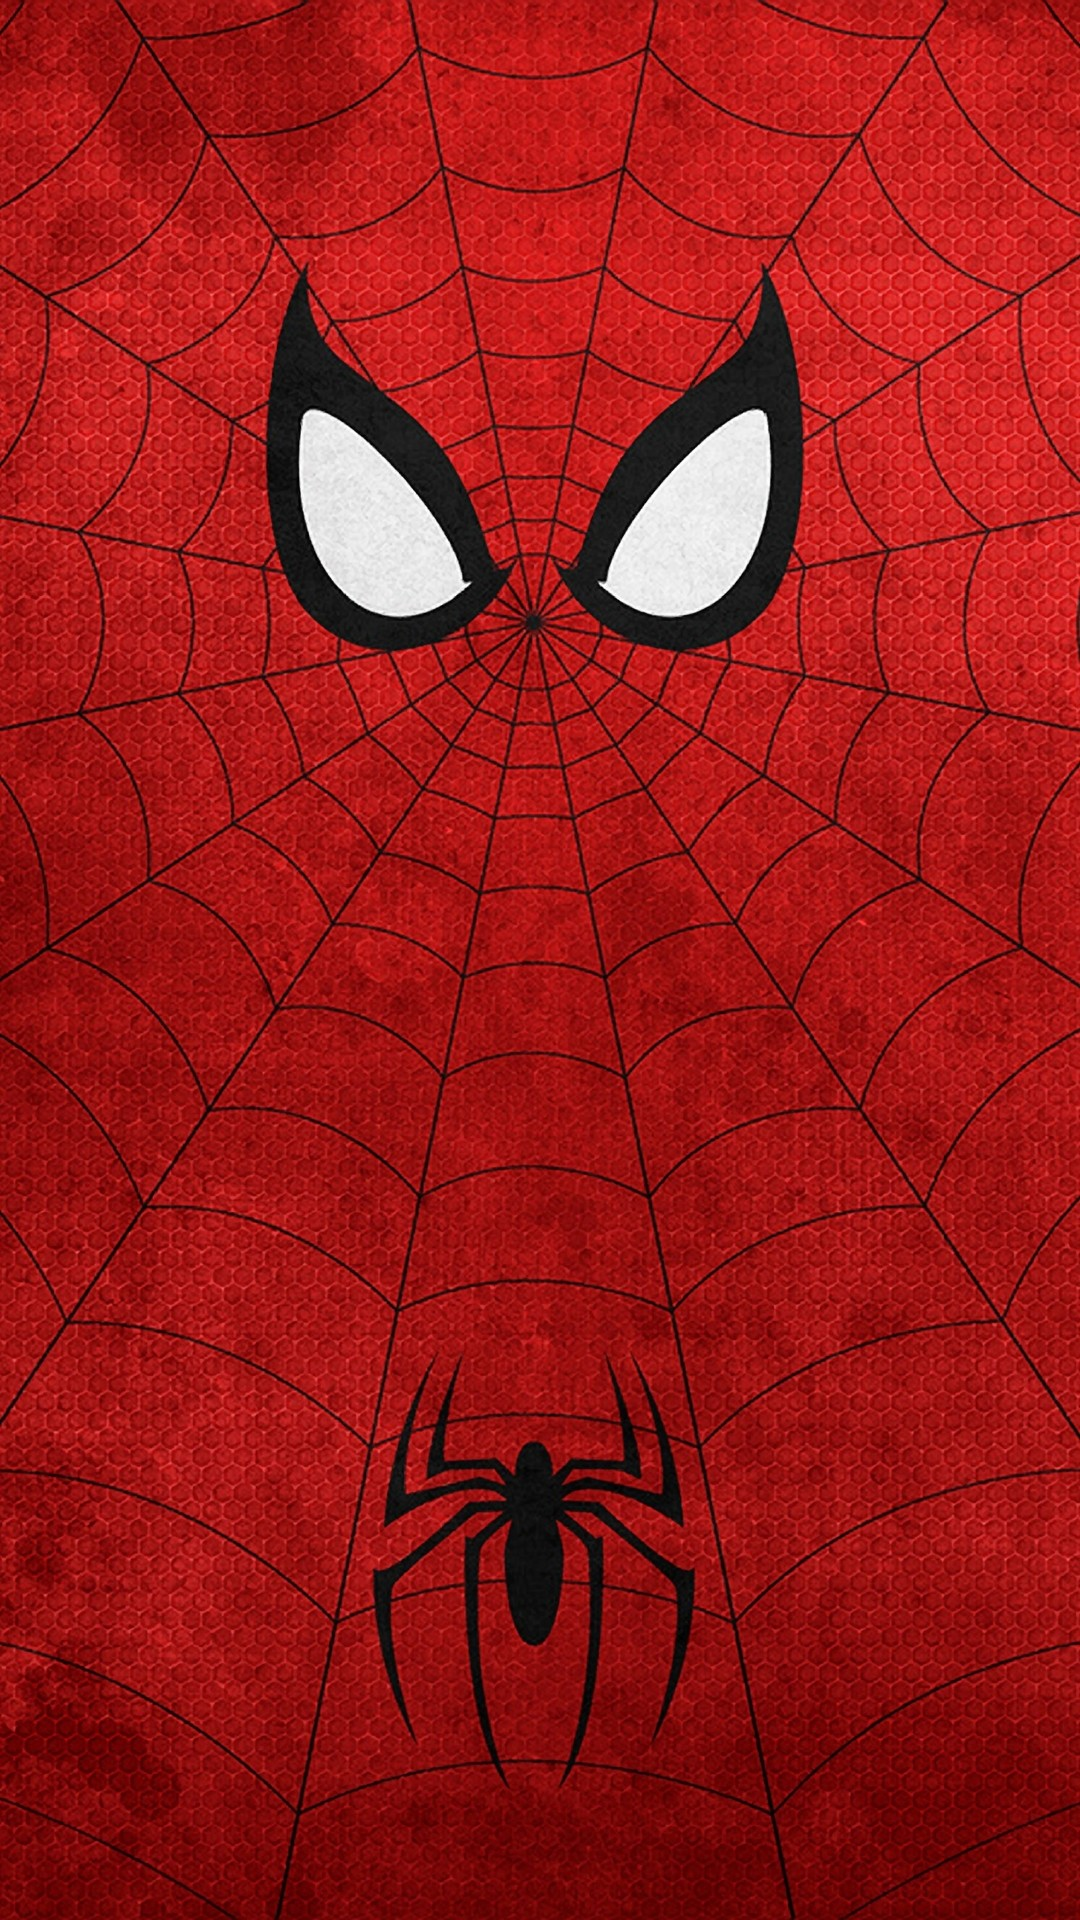 Spiderman Iphone Wallpaper Hd 83 Images